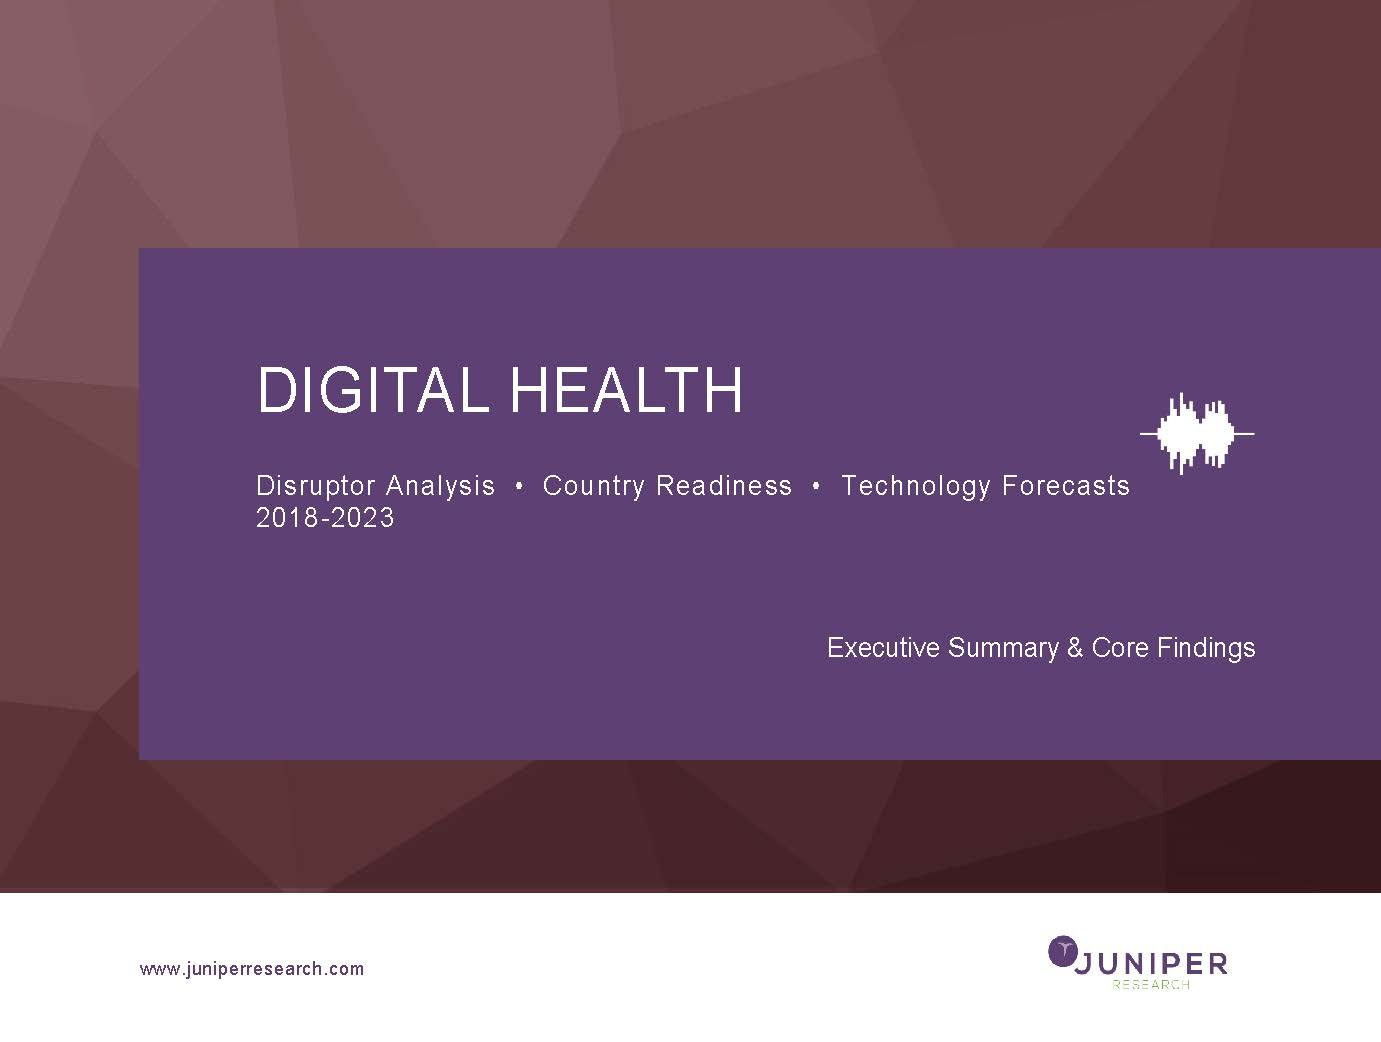 Digital Health: Executive Summary & Core Findings 2018-2023